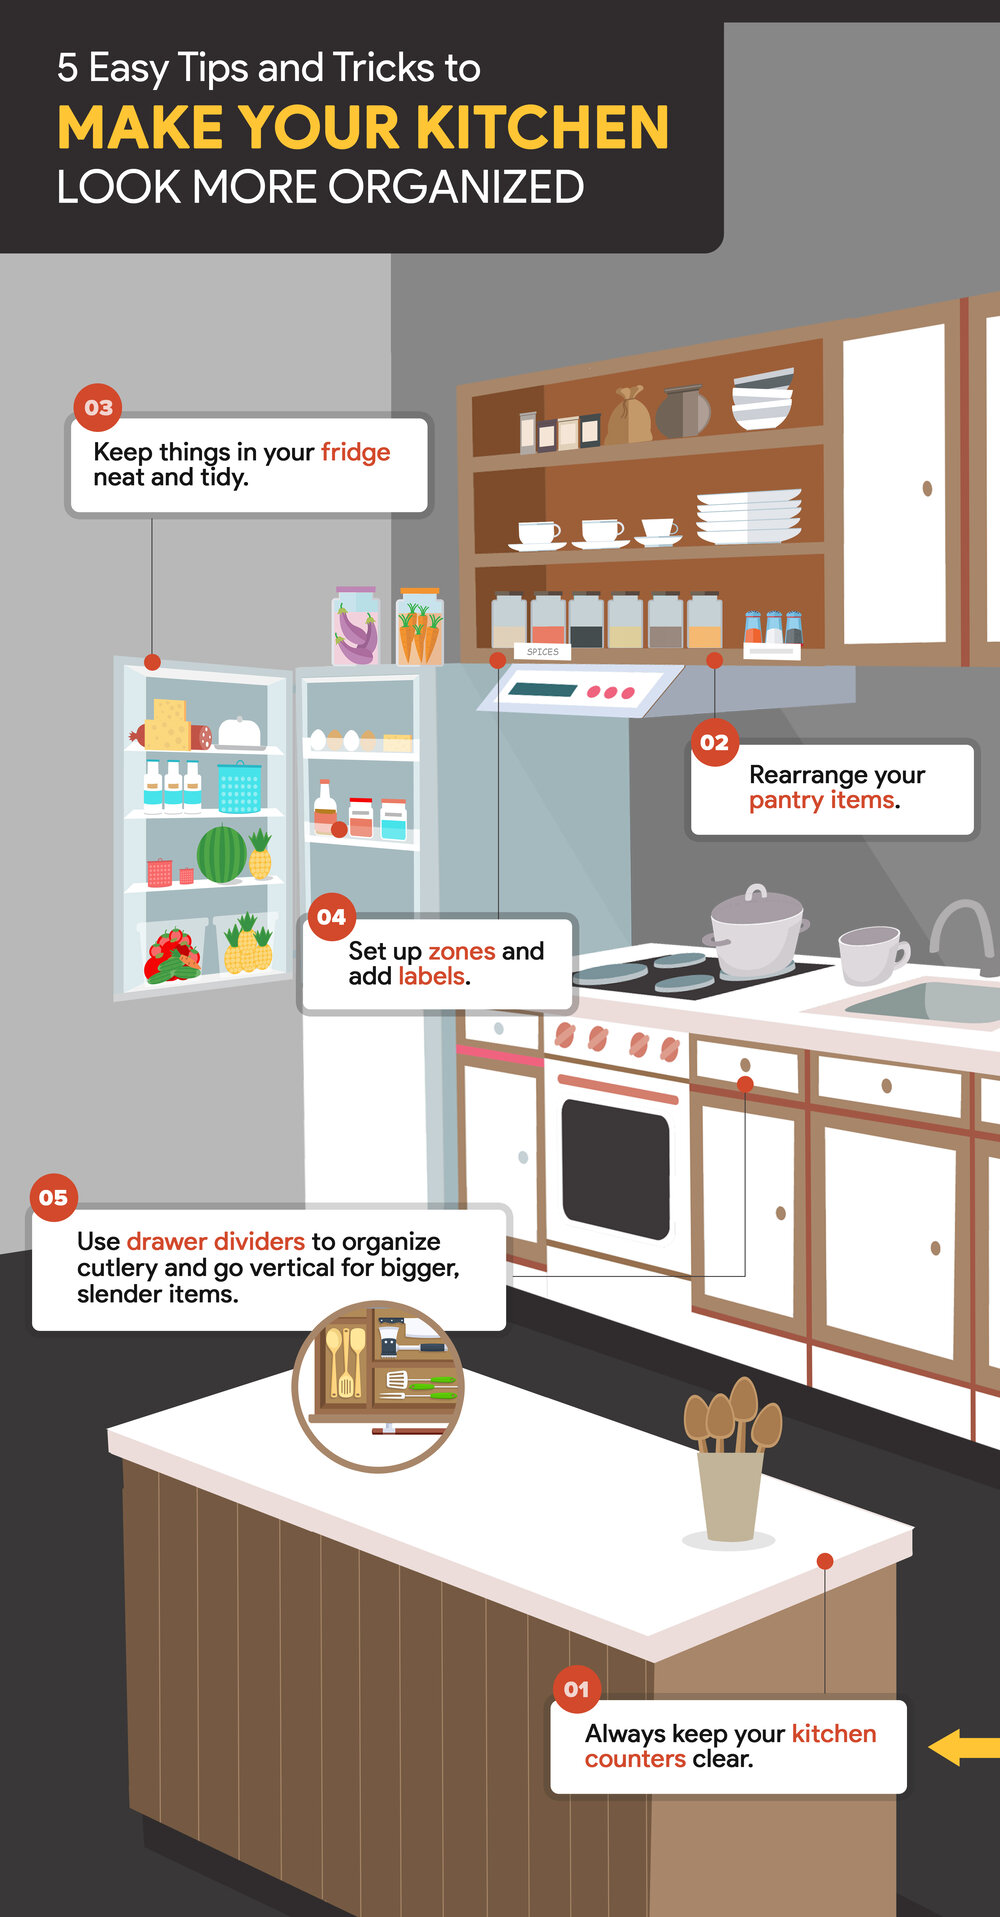 5 Easy Tips and Tricks to Make Your Kitchen Look More Organized